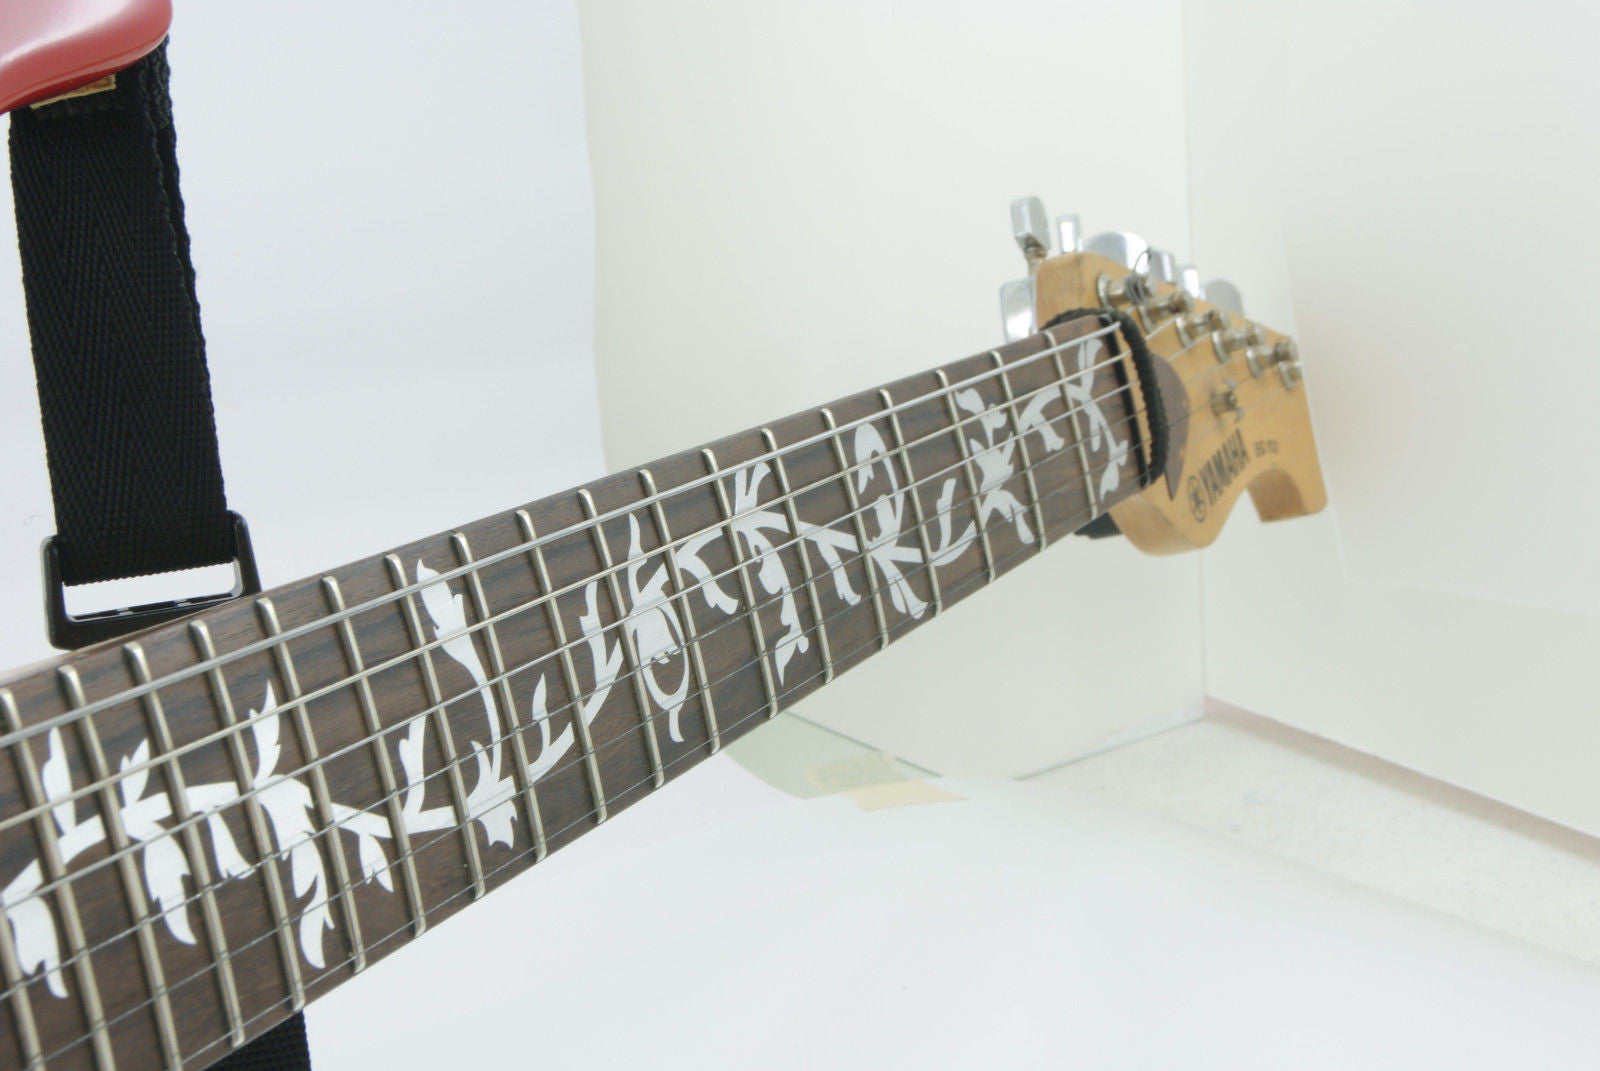 TREE OF LIFE Guitar Fret Inlay Decals